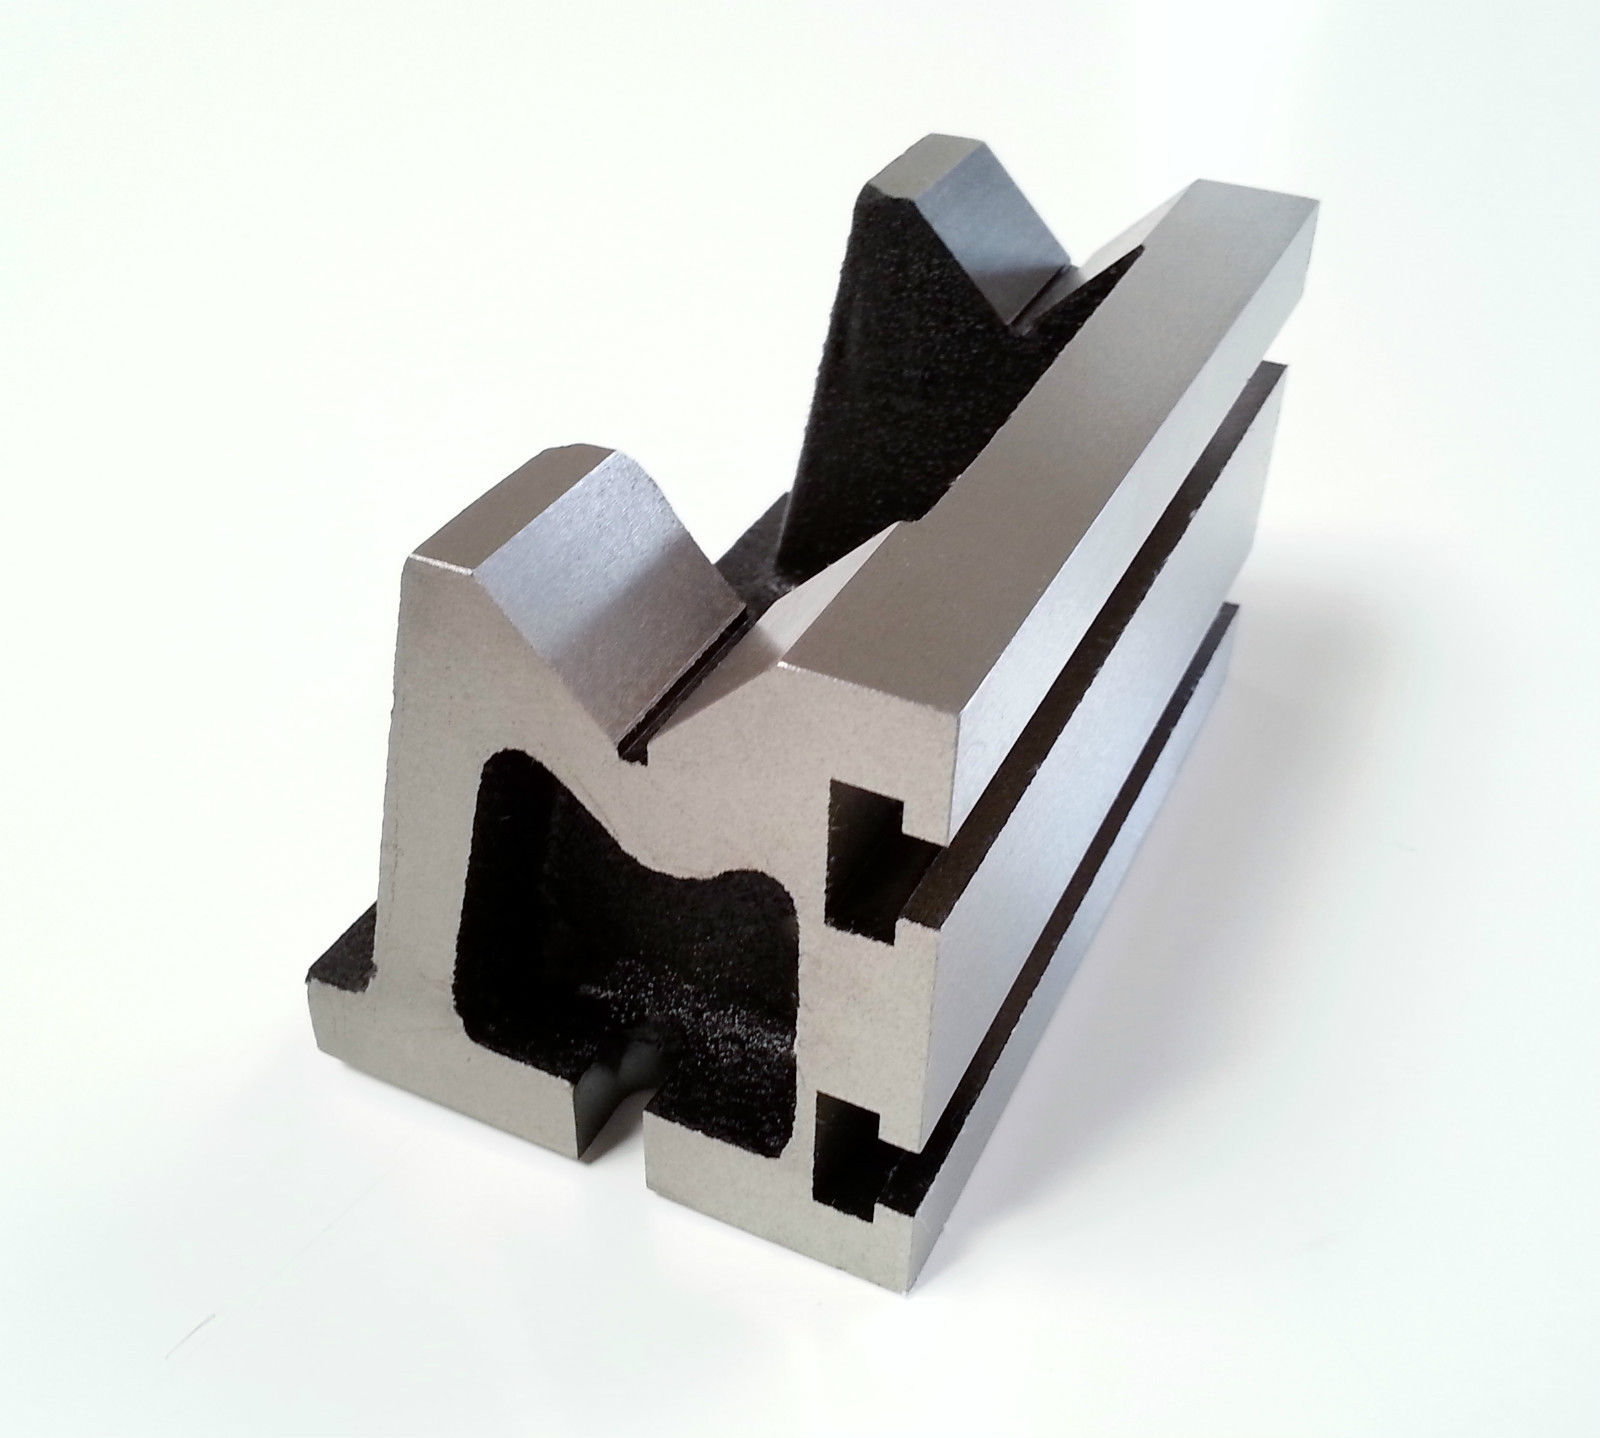 Vee Angle Plate 3 Quot X 3 Quot X5 Quot Tee Slotted